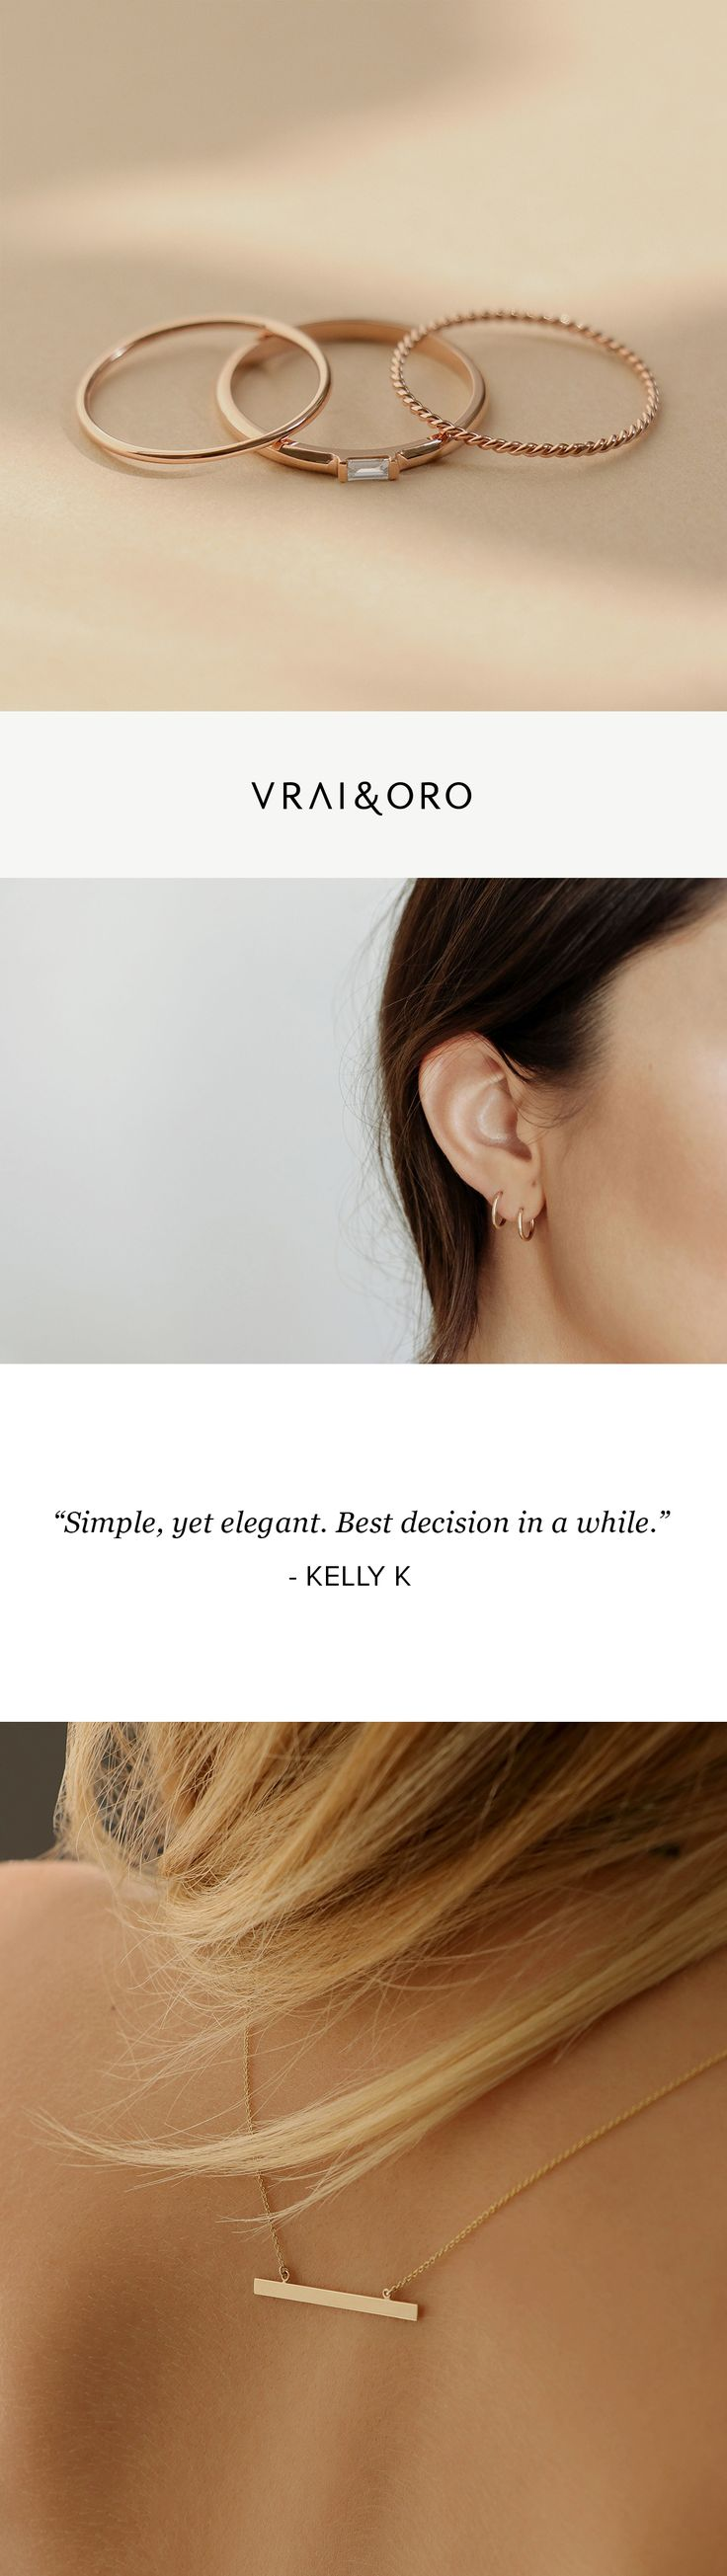 Simple design with a sustainable outlook. See the jewelry line that has Vogue, Forbes and Fast Company talking.